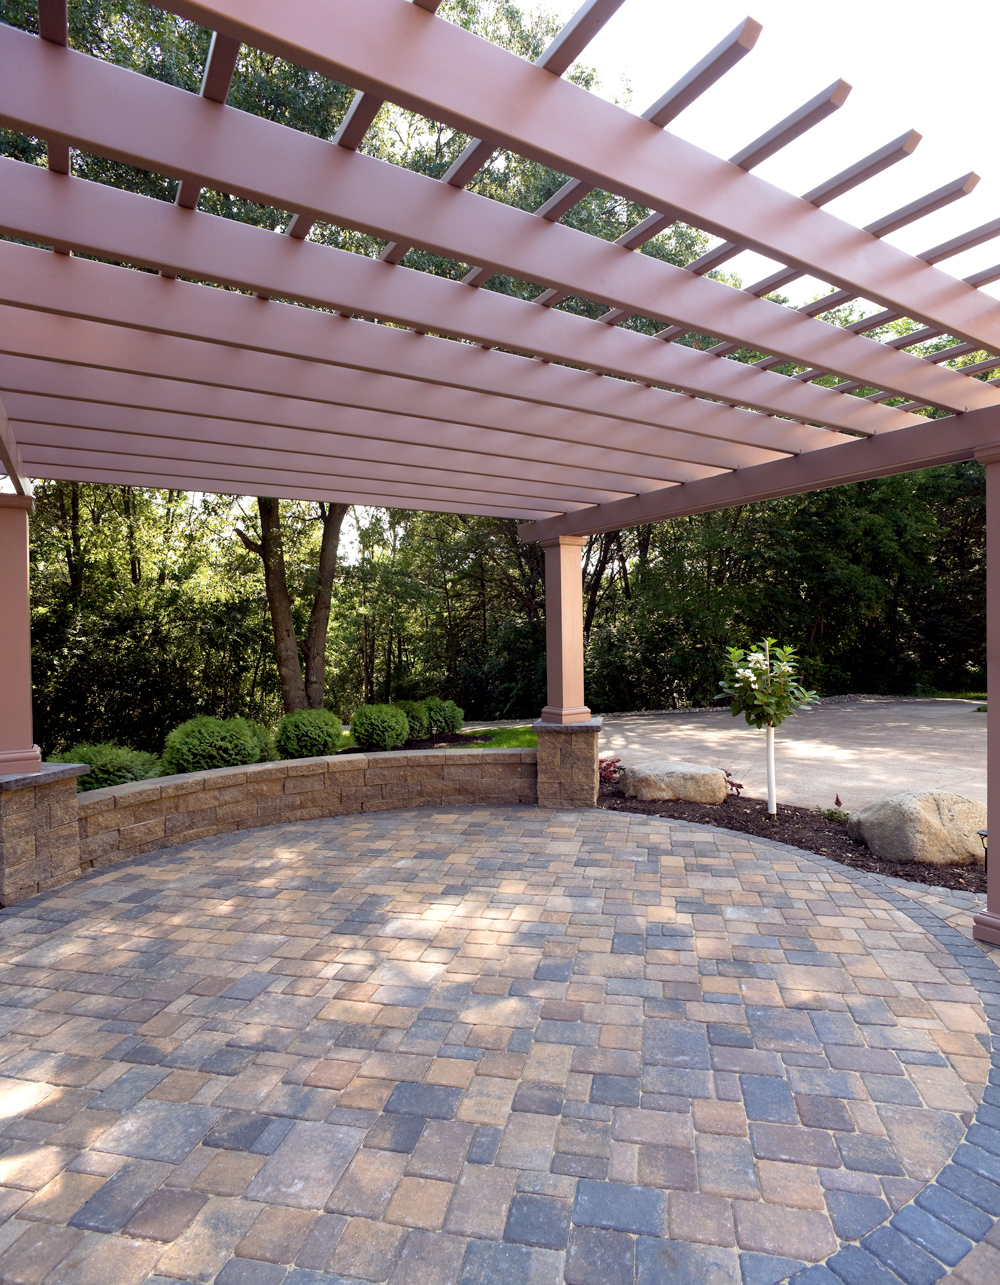 This circular paver patio is stunning with the colors and contrasting border course of pavers, planter walls, and natural boulders.